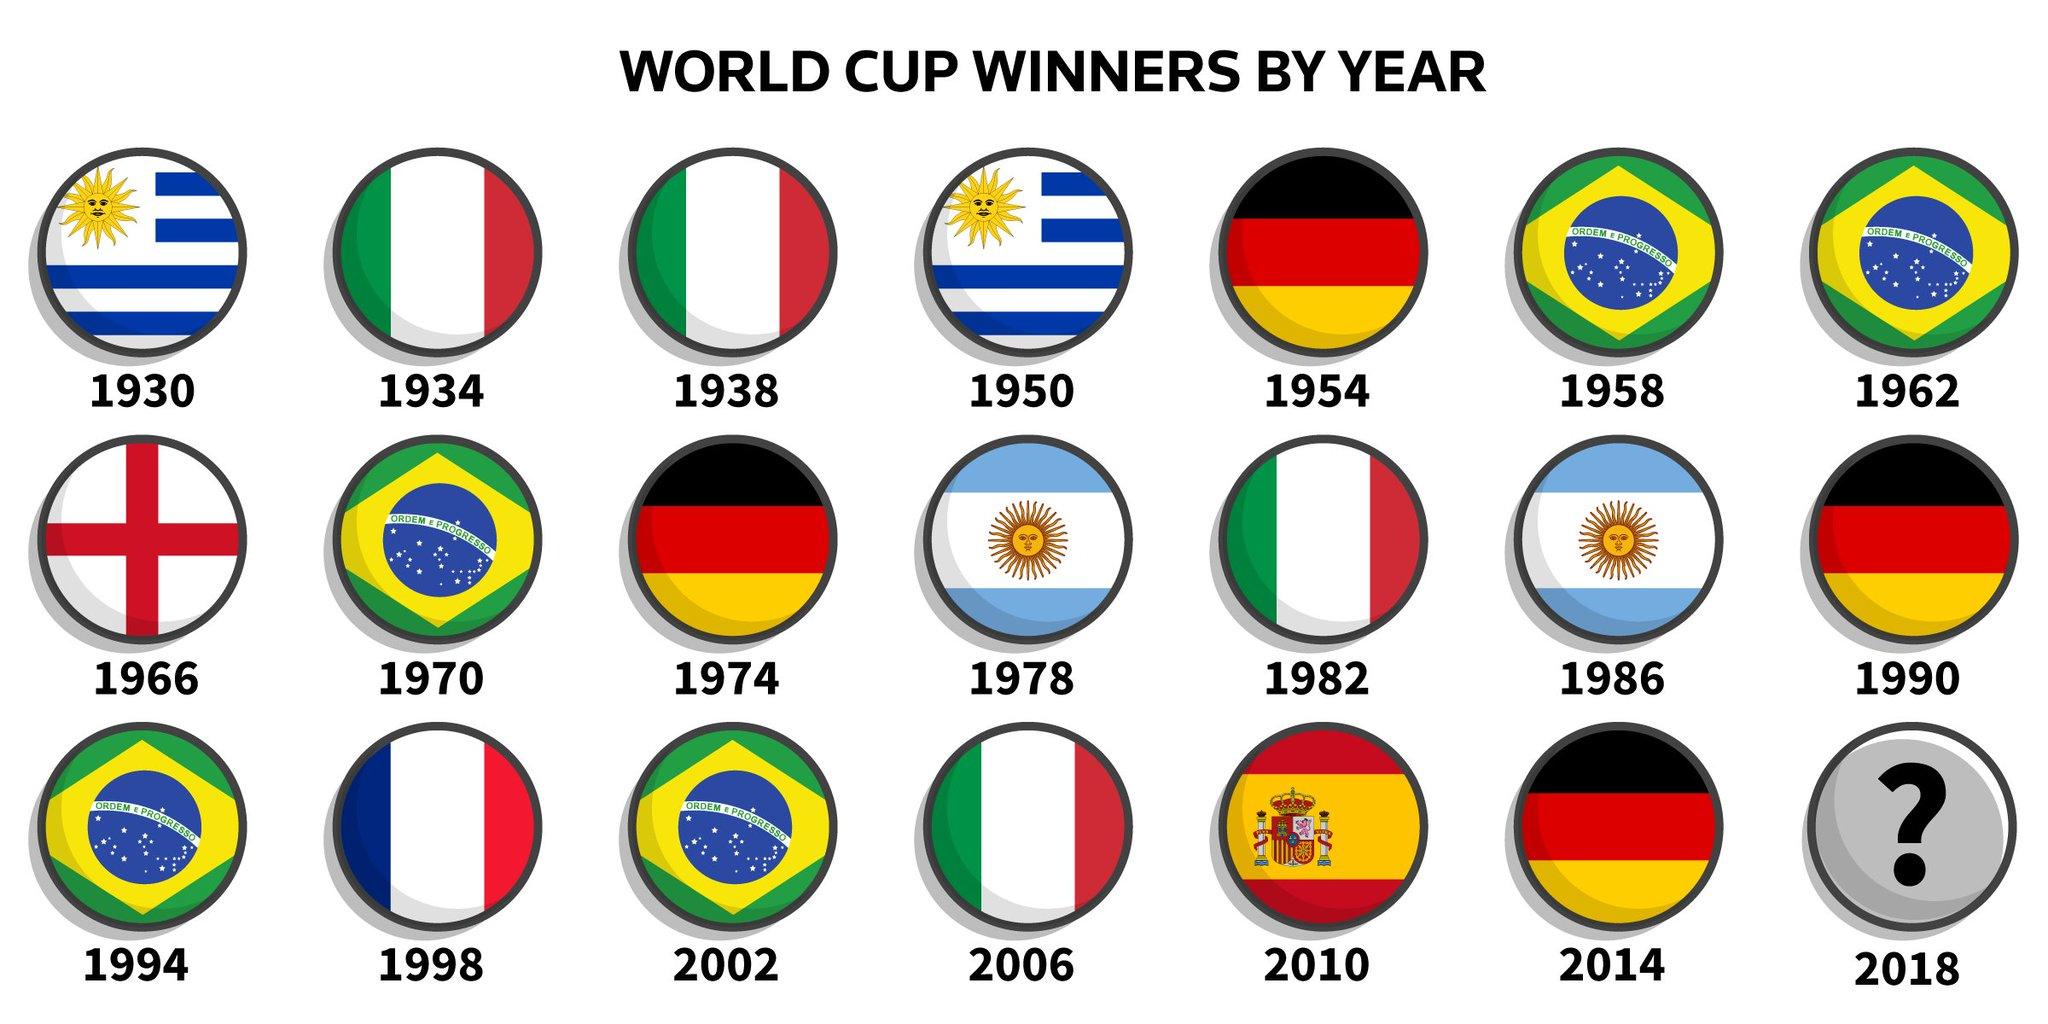 See all the #WorldCup winners by year since the first tournament in 1930. Test yourself: https://t.co/9sUw7Oim6o https://t.co/dErWgHIC44